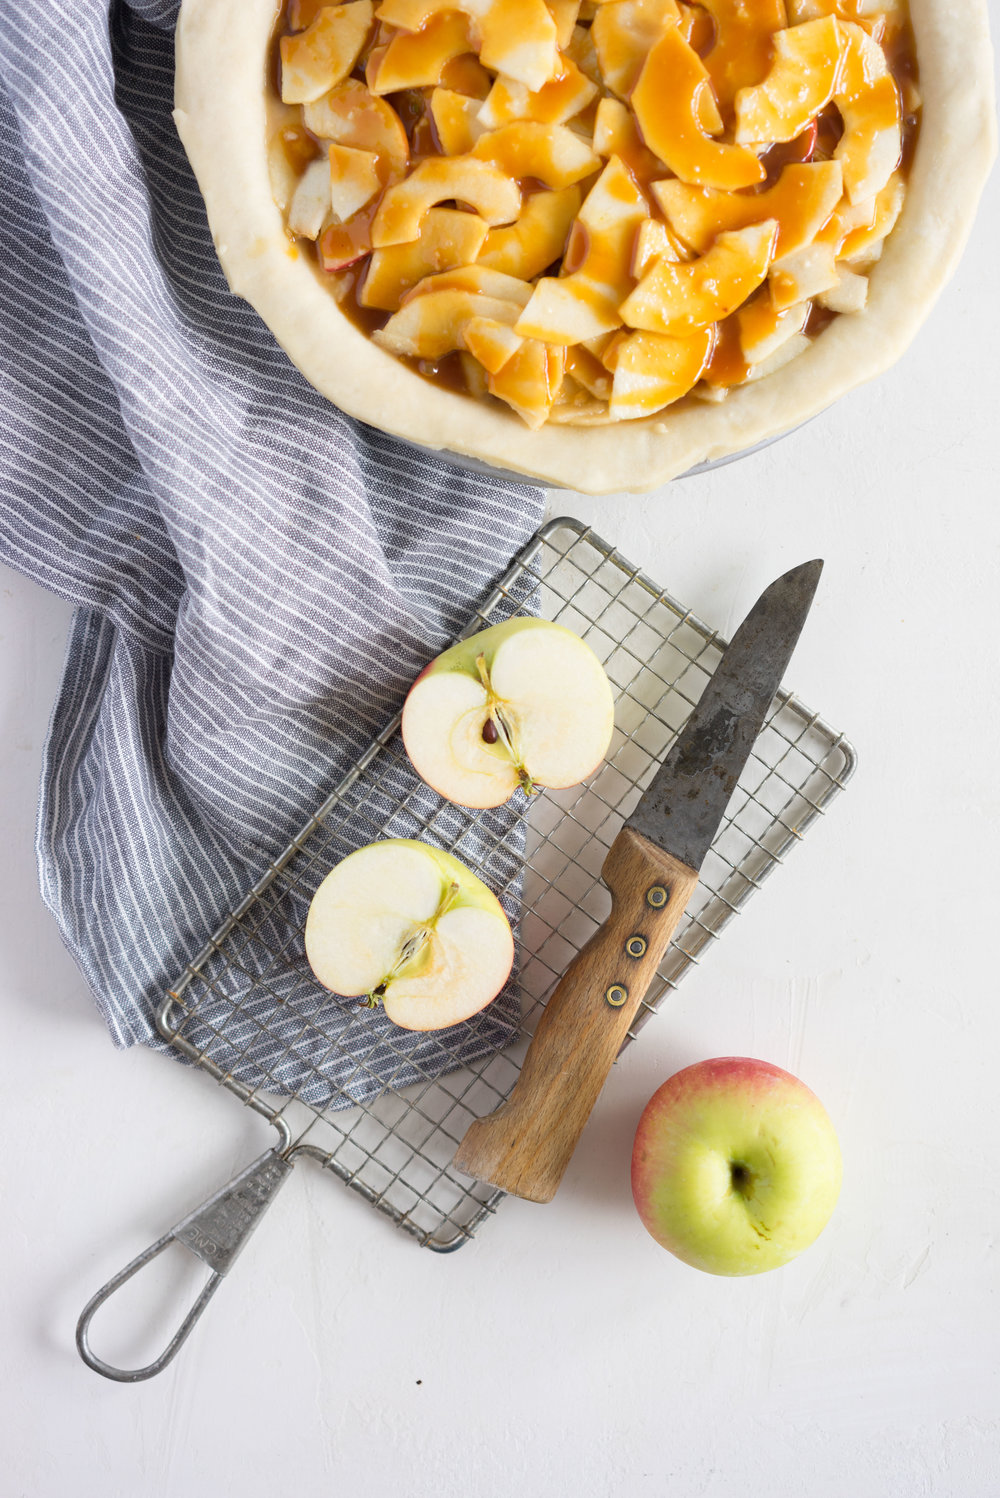 Miso Caramel Apple Pie - Flaky pastry, fresh apples, and a sweet/savoury miso caramel